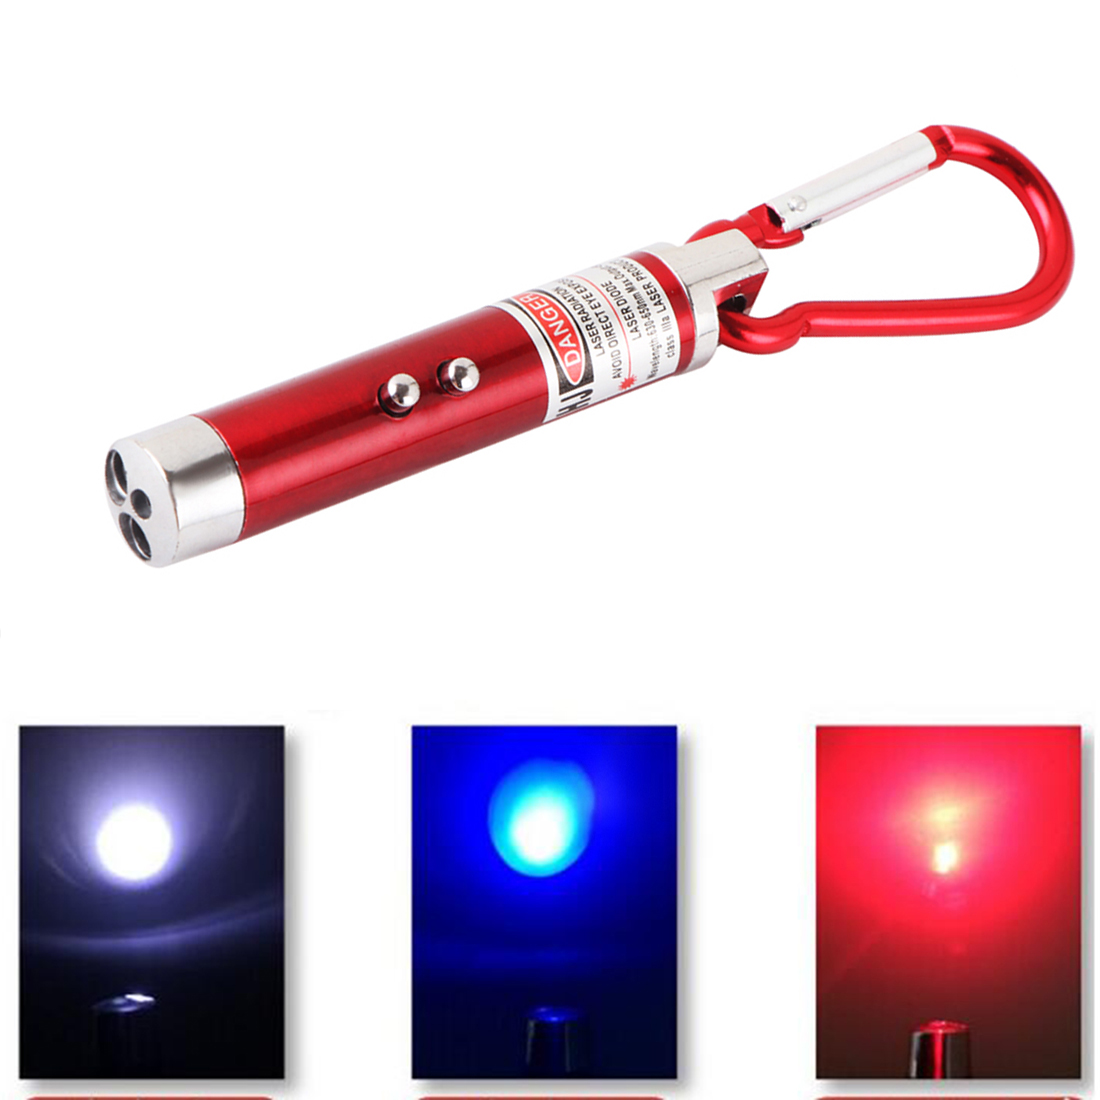 noyokere-remarkable-3-in-fontb1-b-font-red-laser-pointer-pen-flashlight-counterfeit-money-detector-c